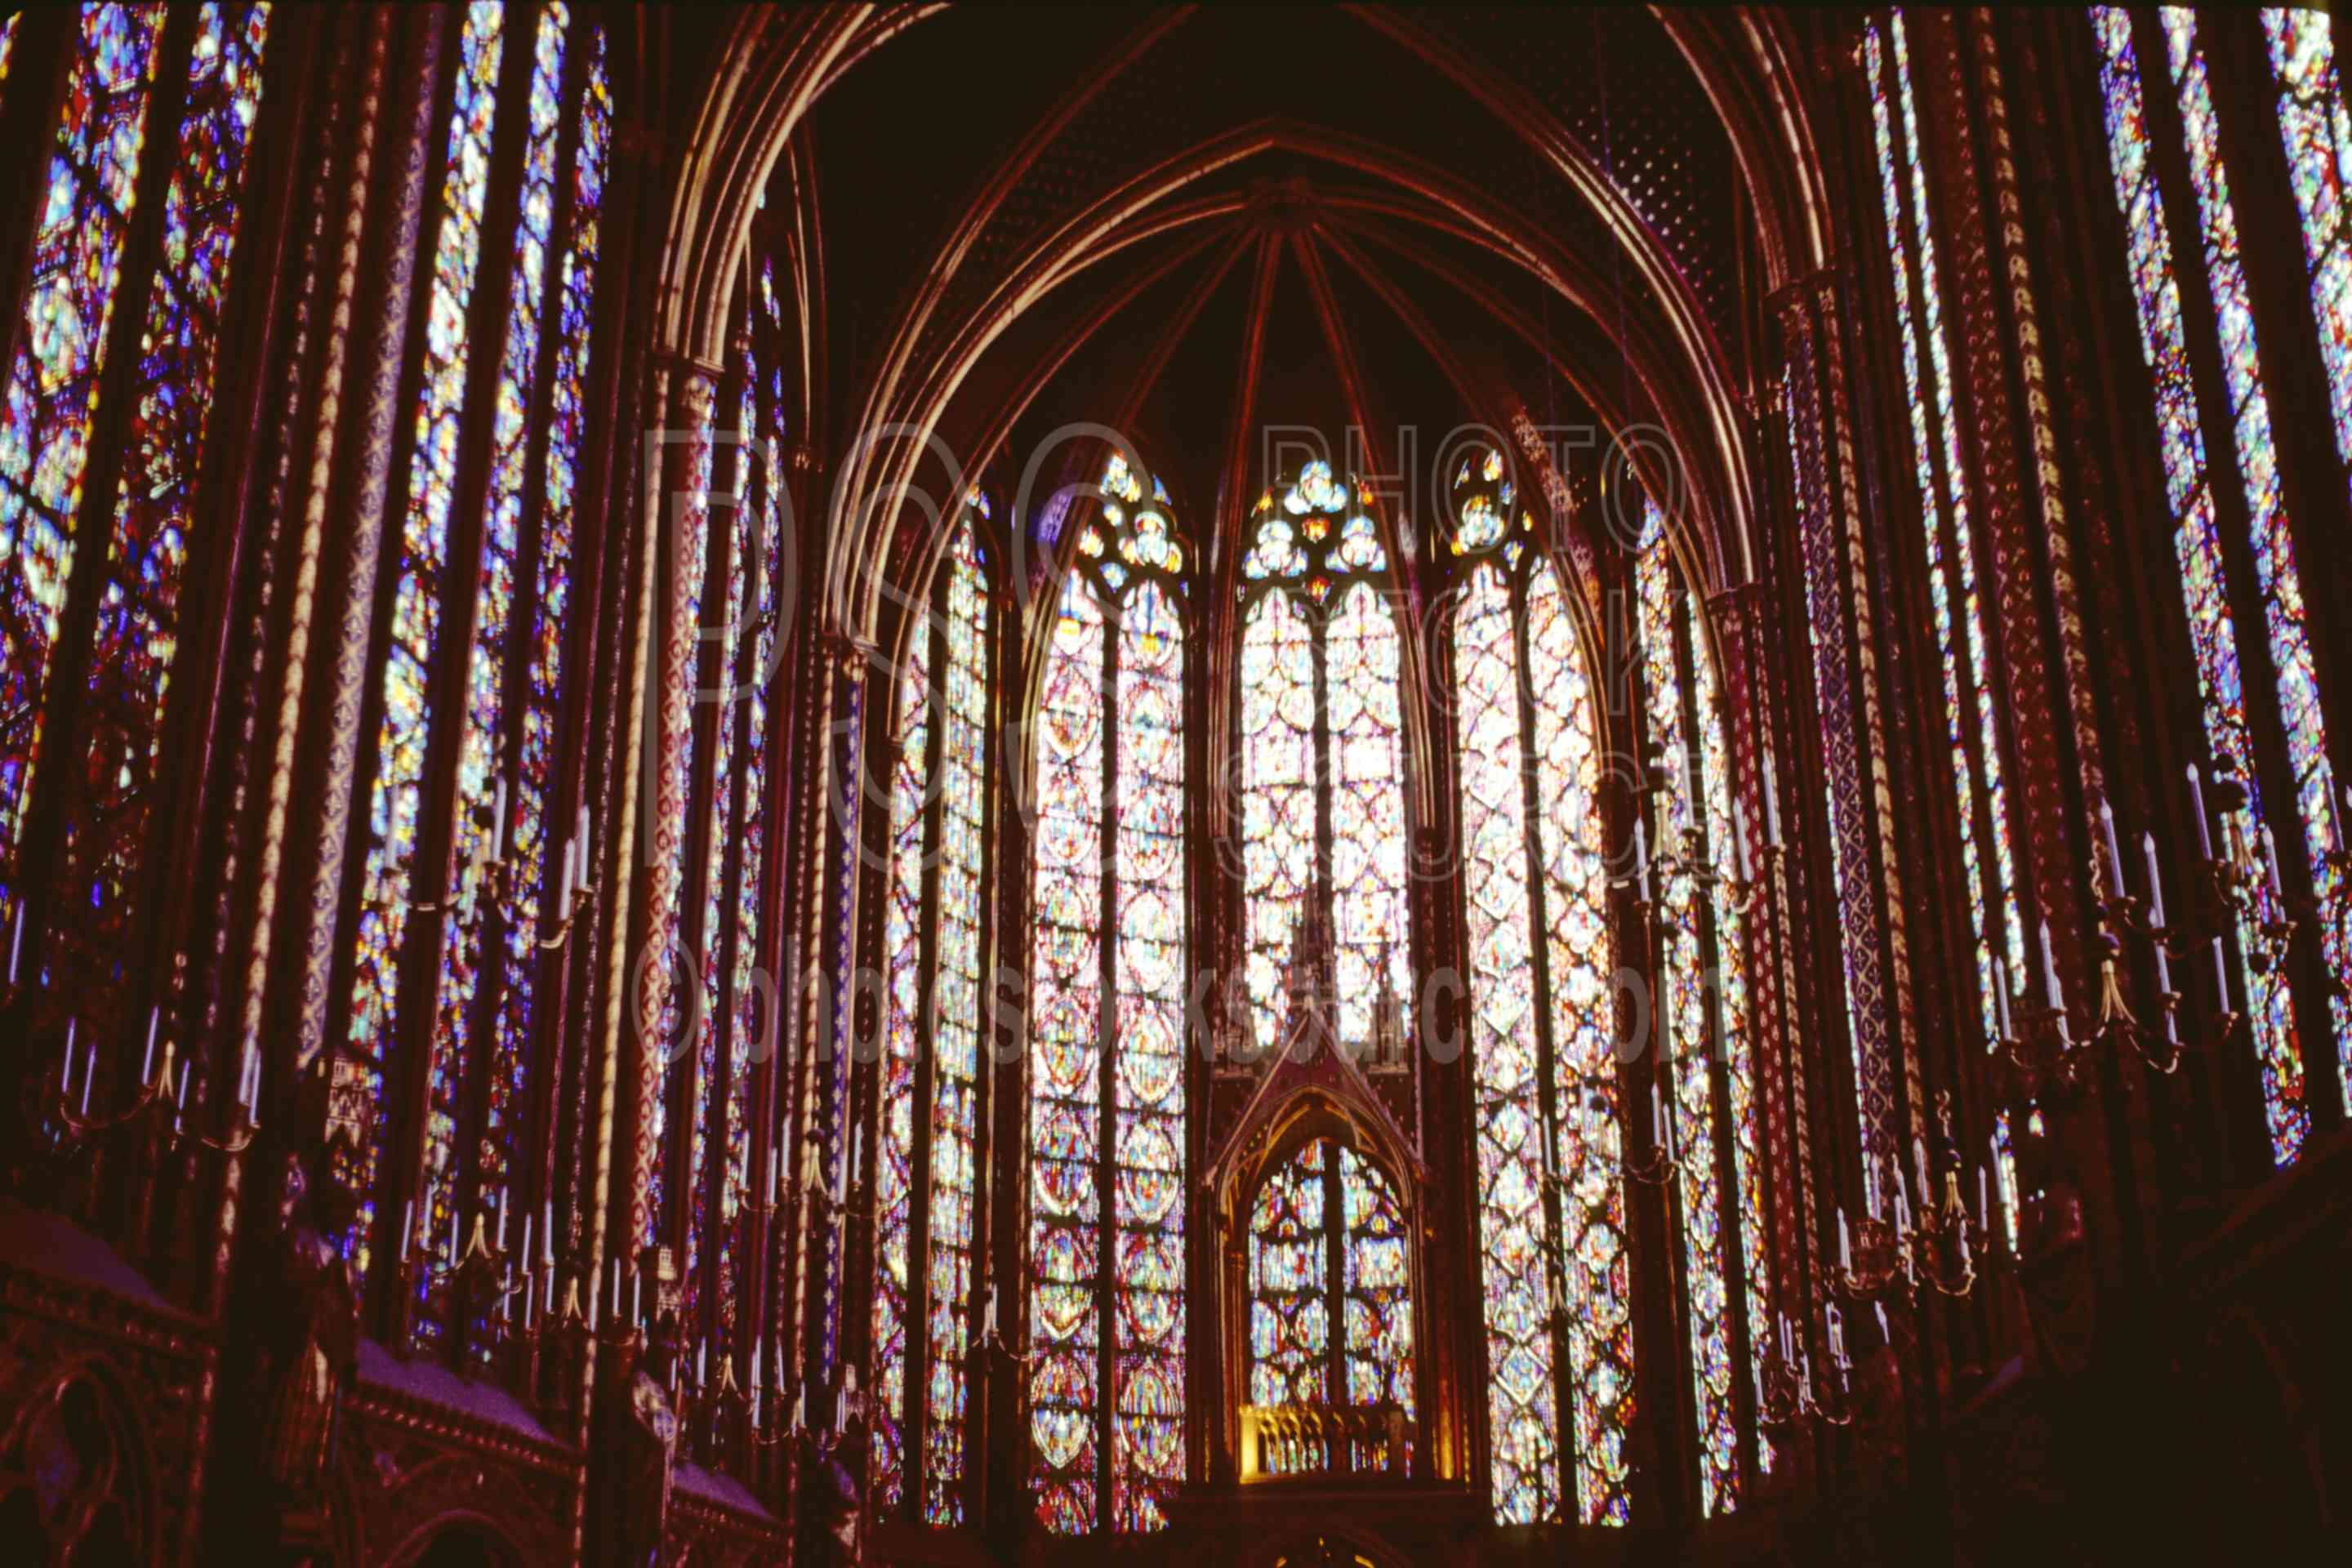 Sainte Chapelle,europe,stained glass,stained glass window,window,france churches